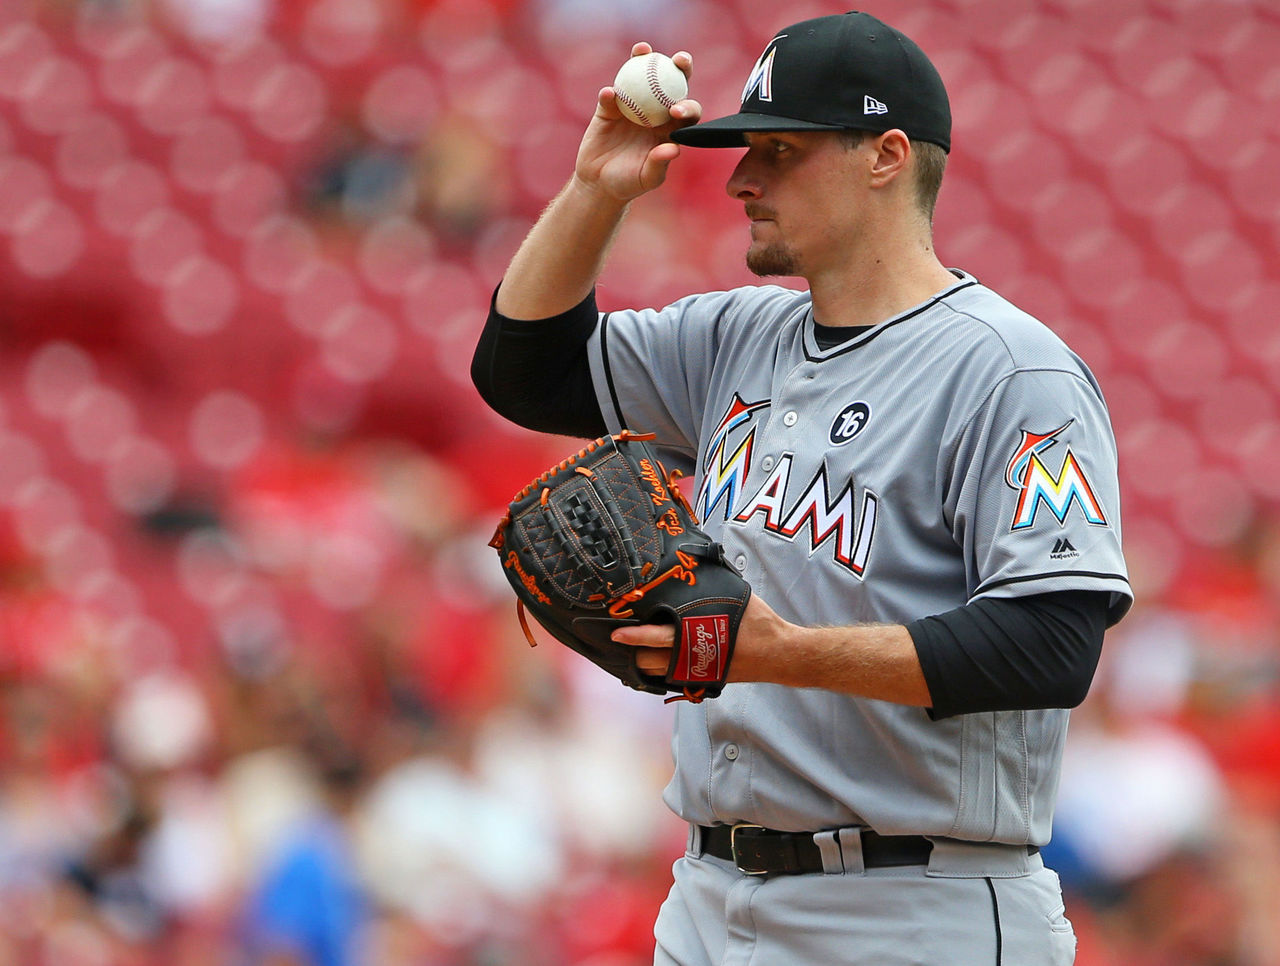 Cropped_2017-07-23t181945z_1165357816_nocid_rtrmadp_3_mlb-miami-marlins-at-cincinnati-reds